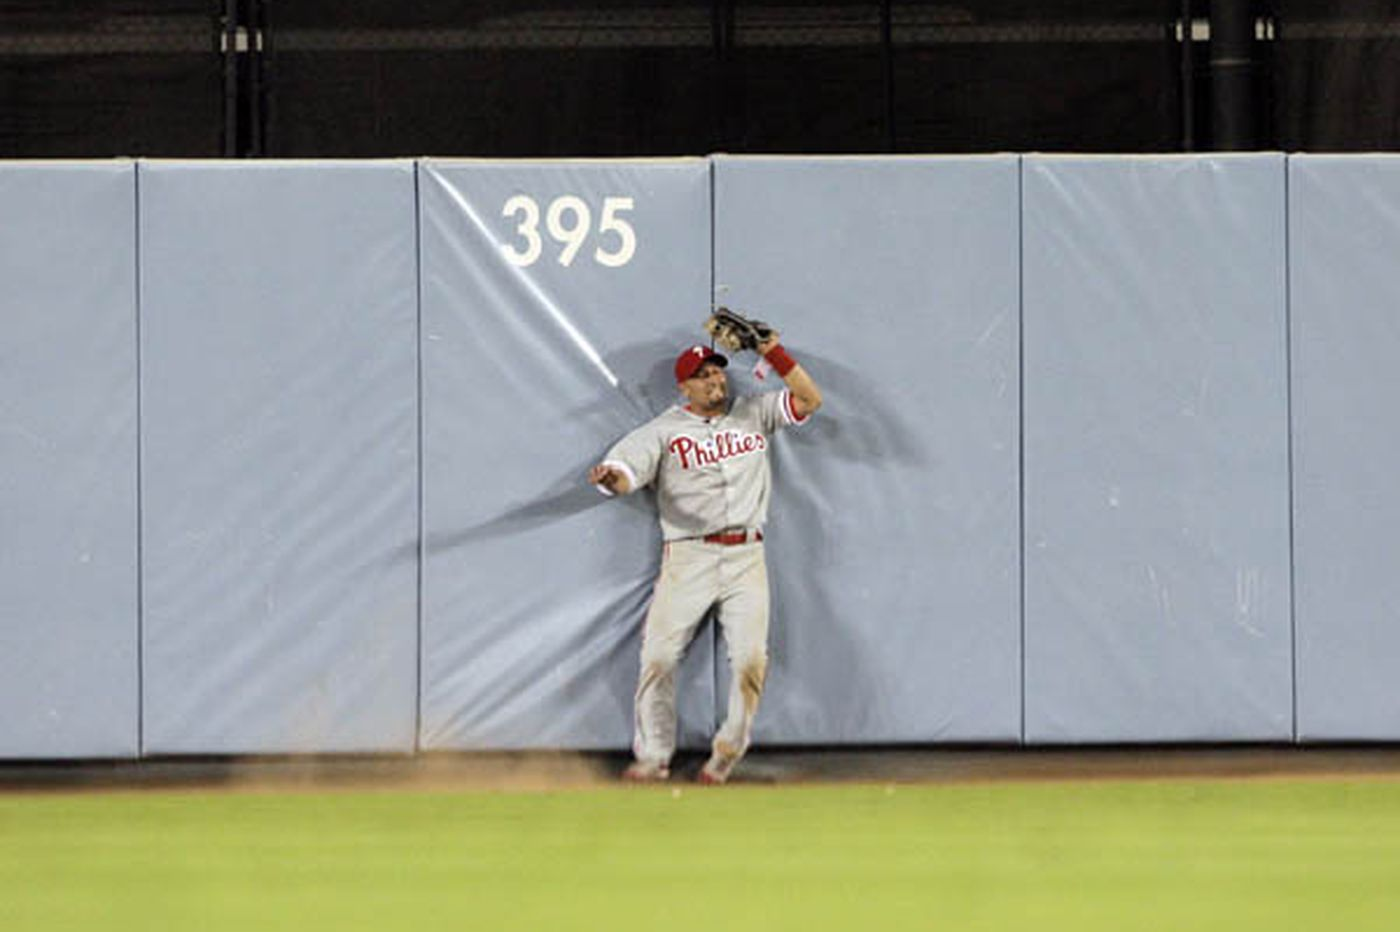 Shane Victorino gives Phillies' Odubel Herrera some advice: 'Bring it. Every day. Every game. Every pitch.' | Marcus Hayes